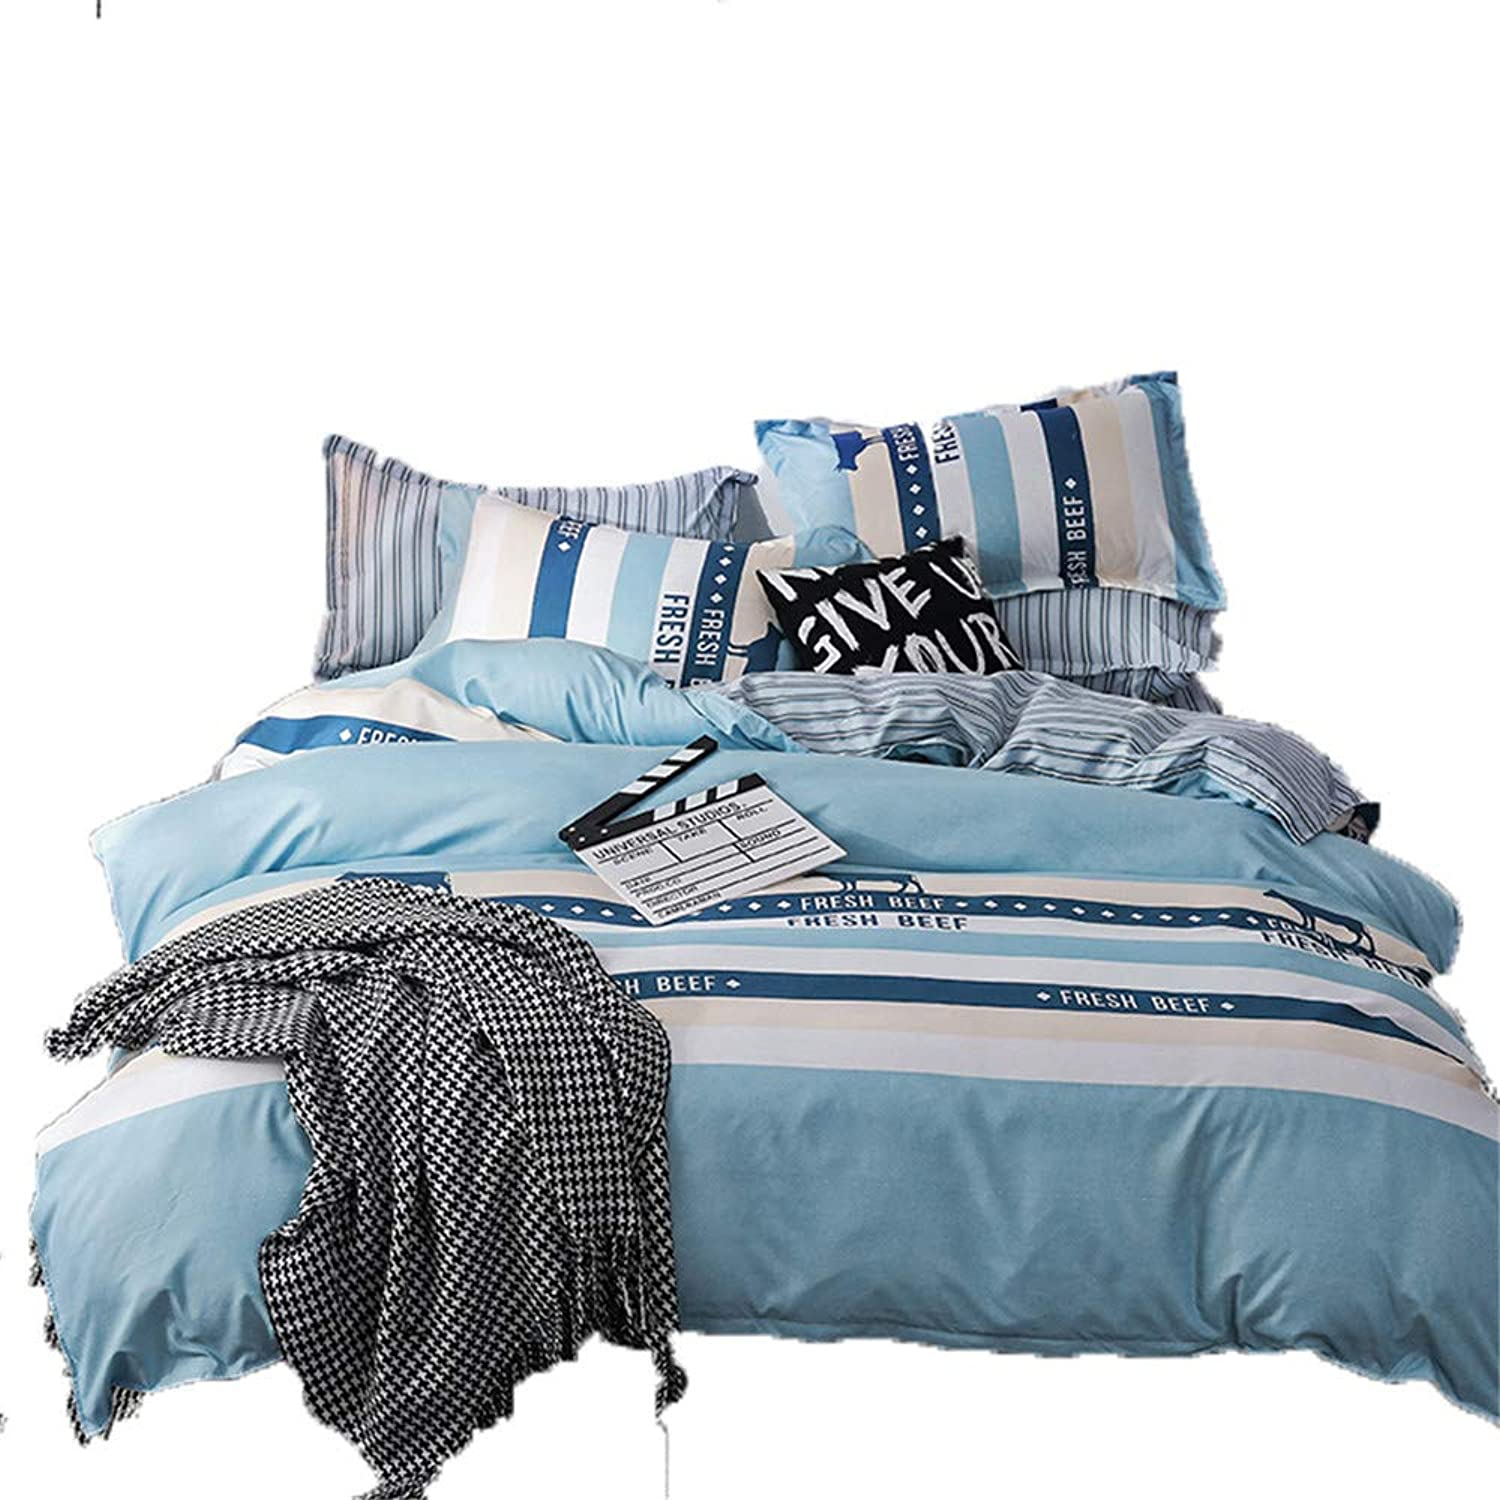 Luofanfei Kids Duvet Cover Set Cotton Striped Pattern Twin Bedding Cover Sets for Teens Reversible bluee Stripes Comforter Cover Twin Size for Decorate Bedroom,3 Pieces Bed Set